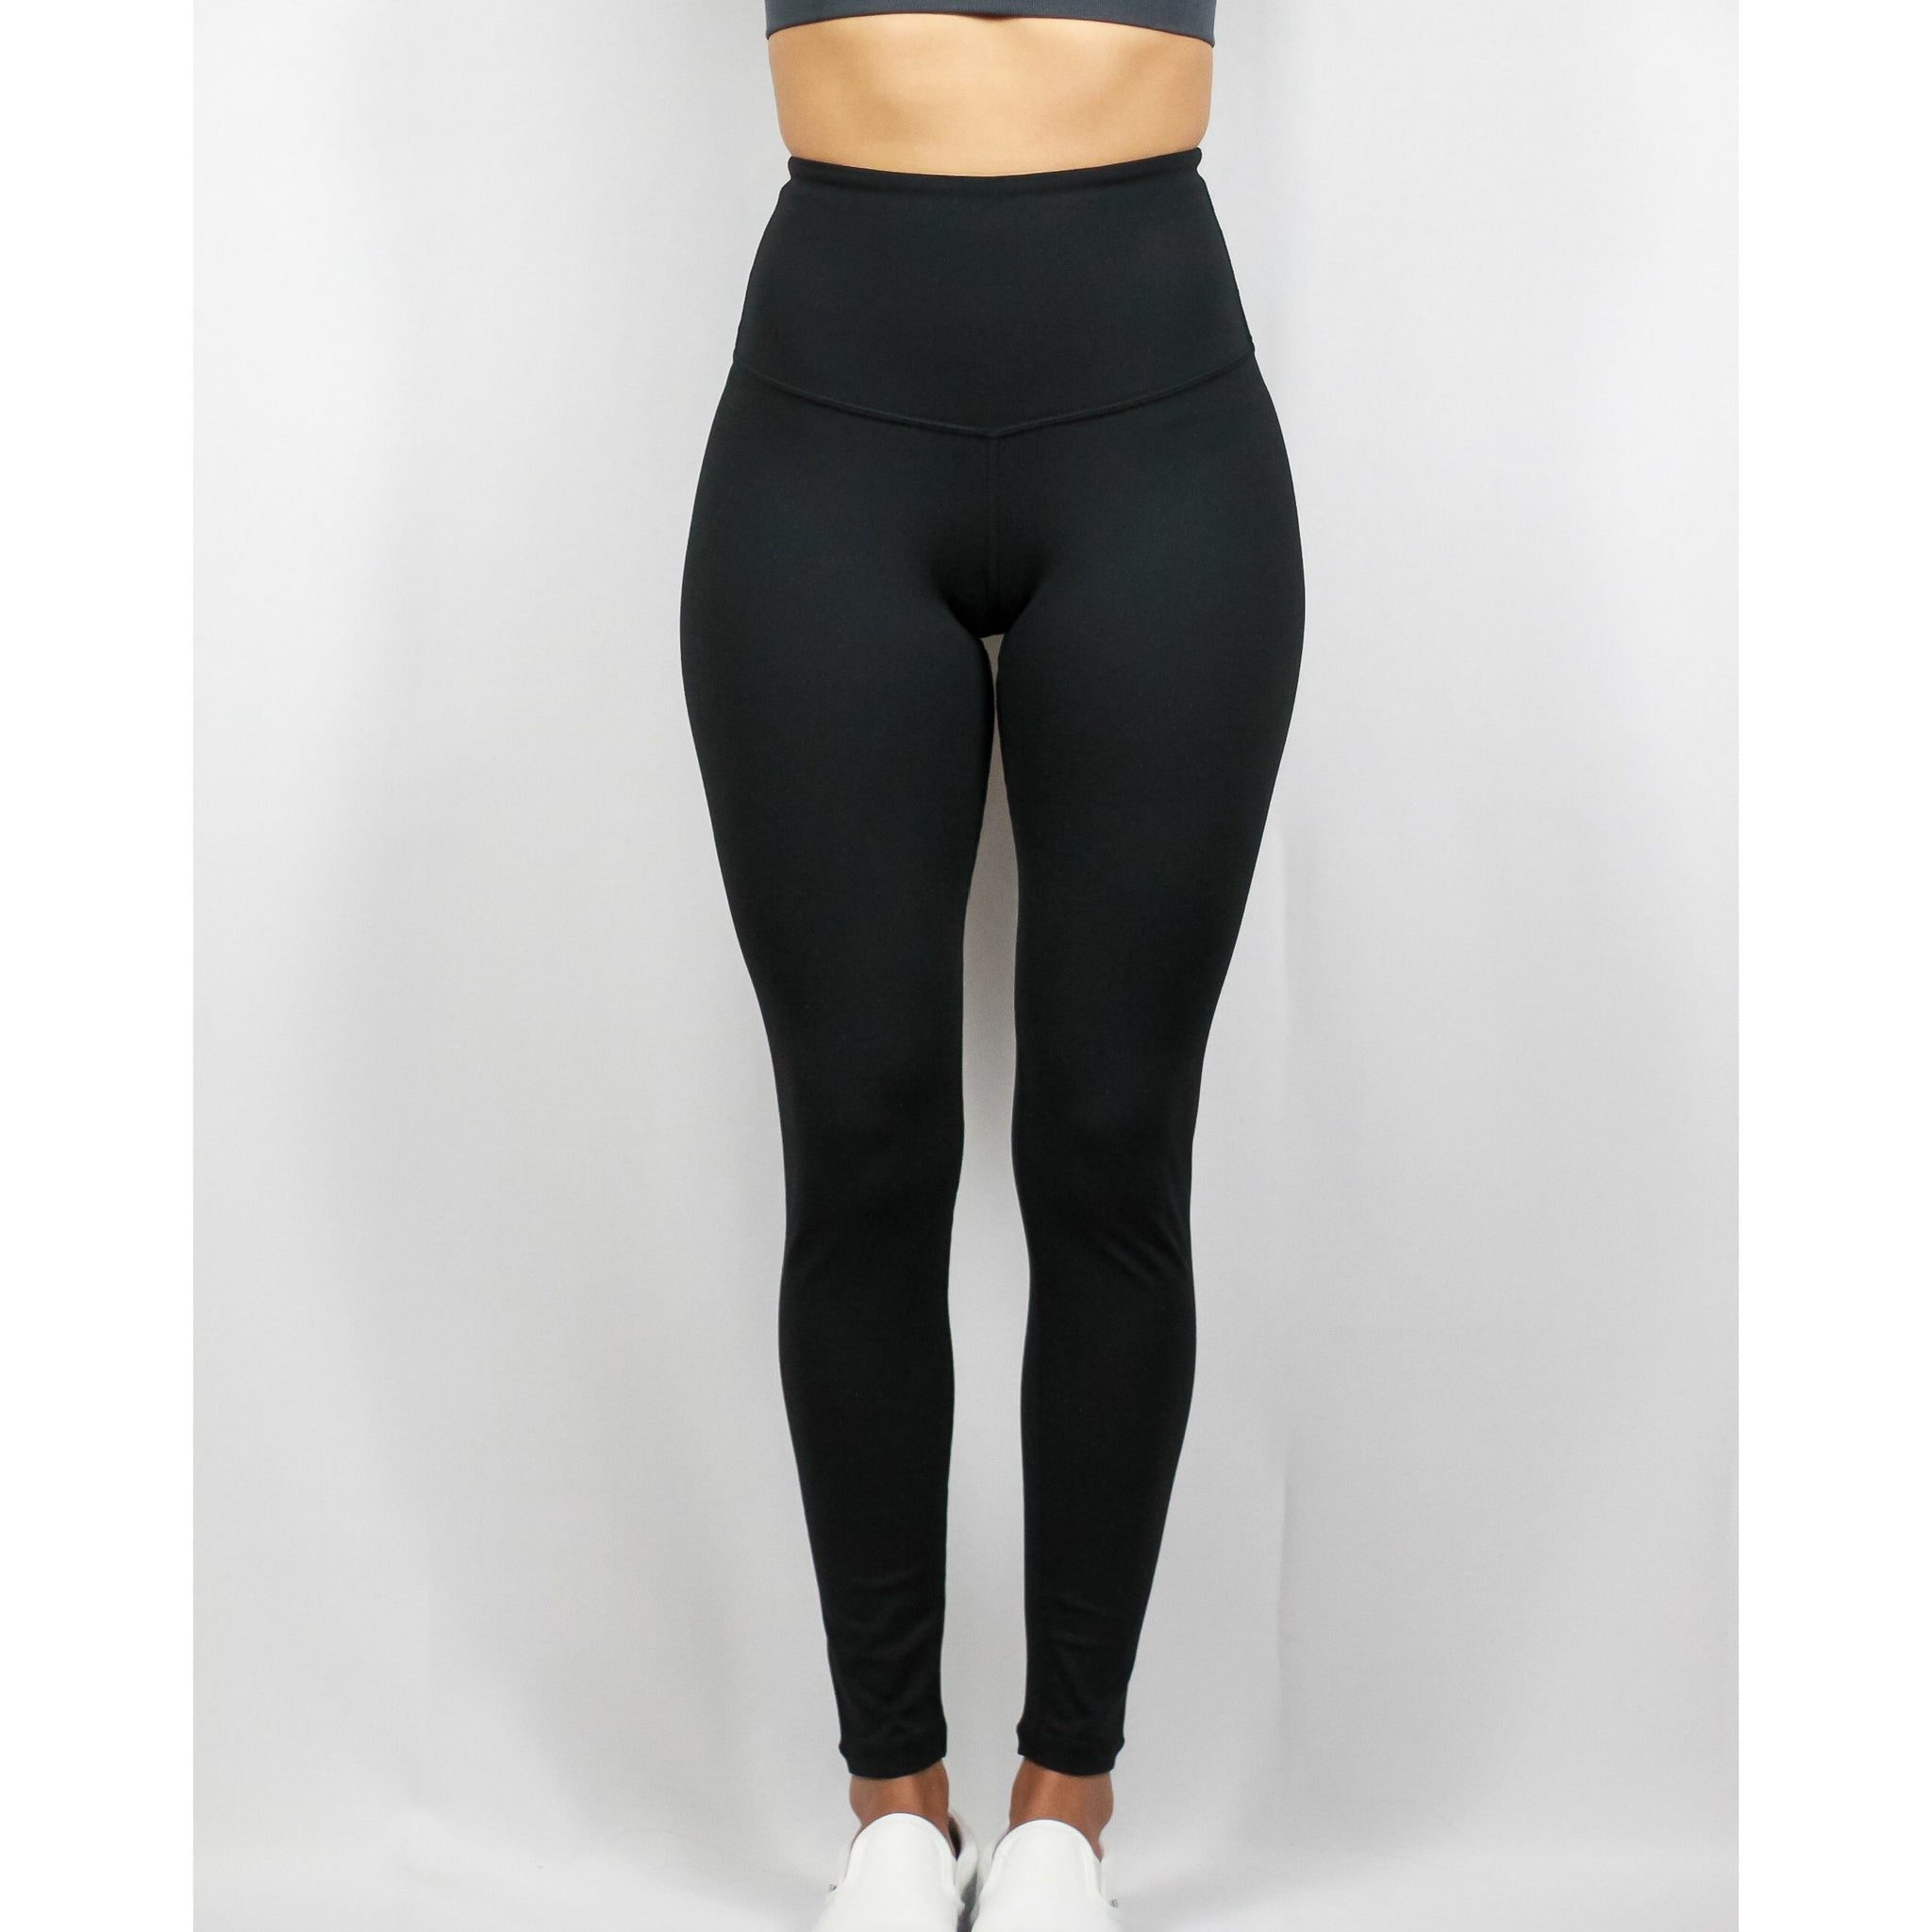 ASPIRE HIGH WAISTED LEGGINGS  V2- BLACK